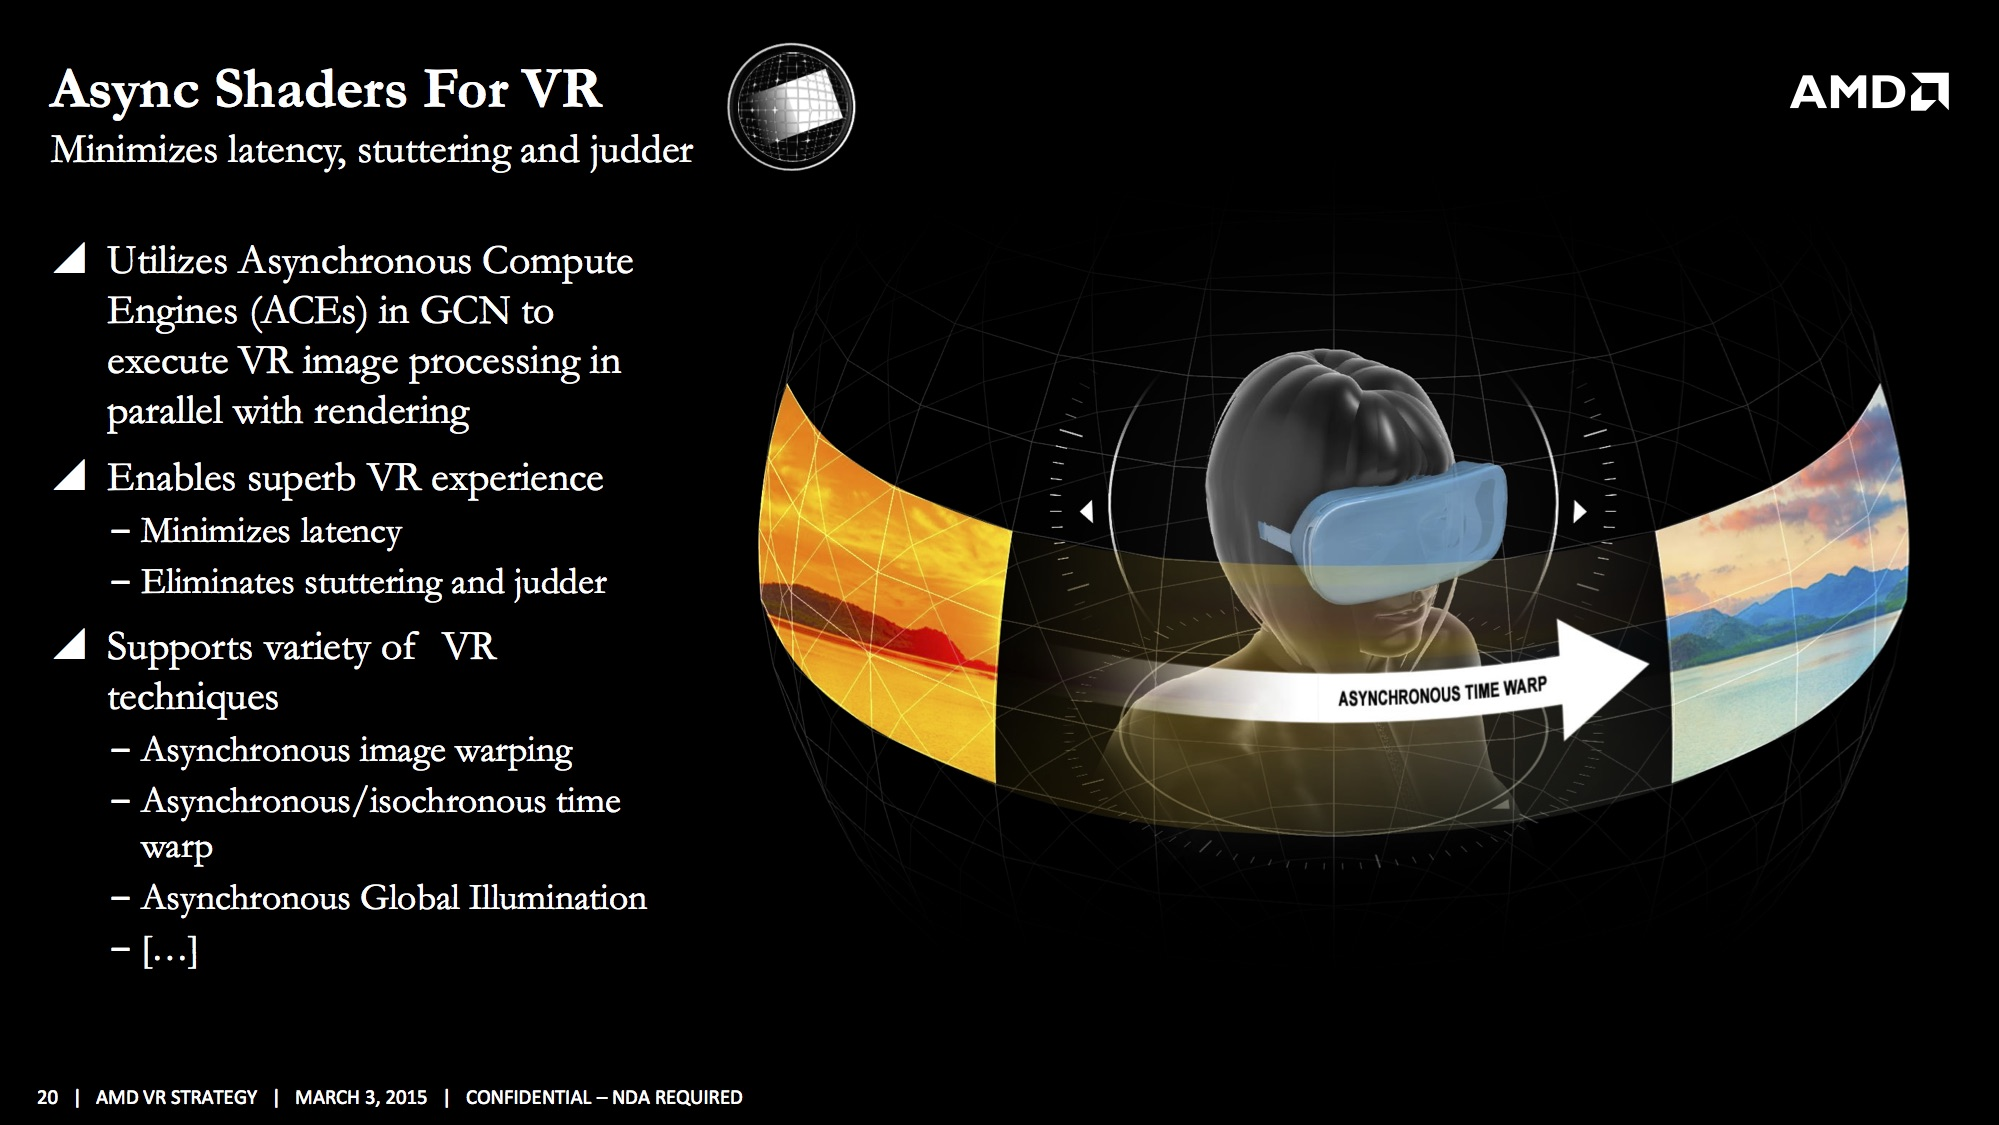 AMD's LiquidVR Announced: AMD Gets Expanded VR Headset